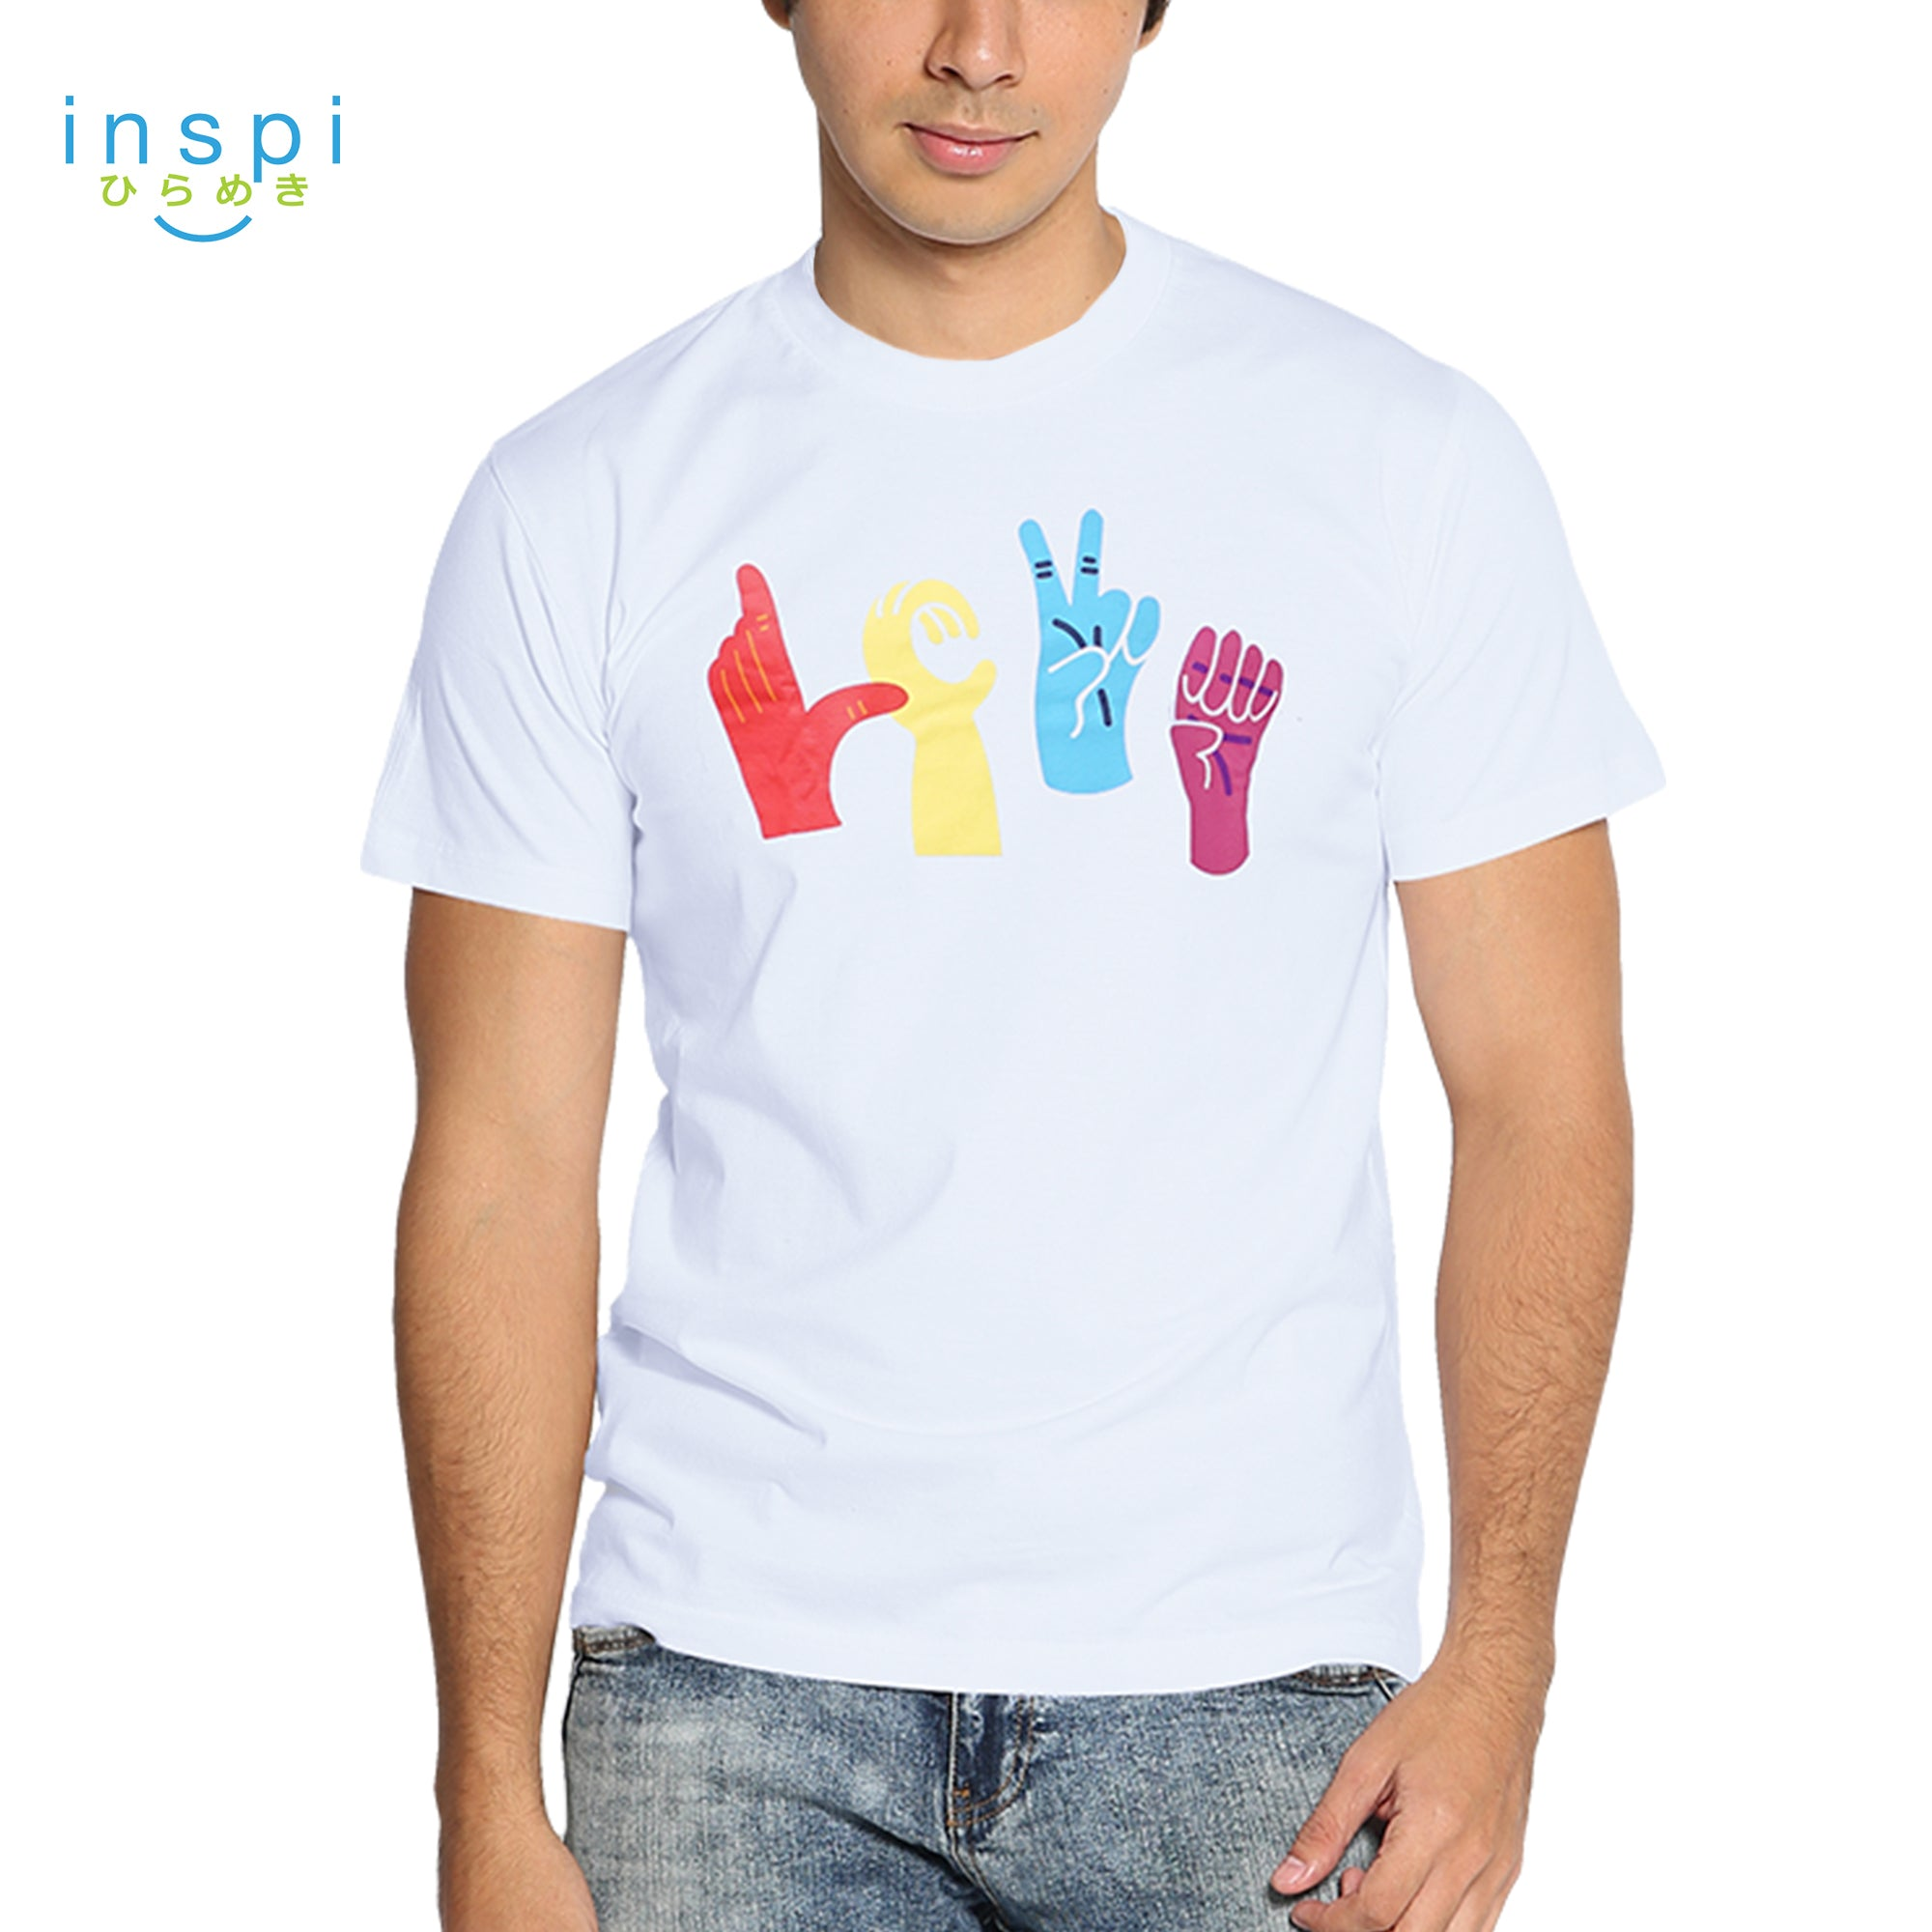 INSPI Tees Love Graphic Tshirt in White